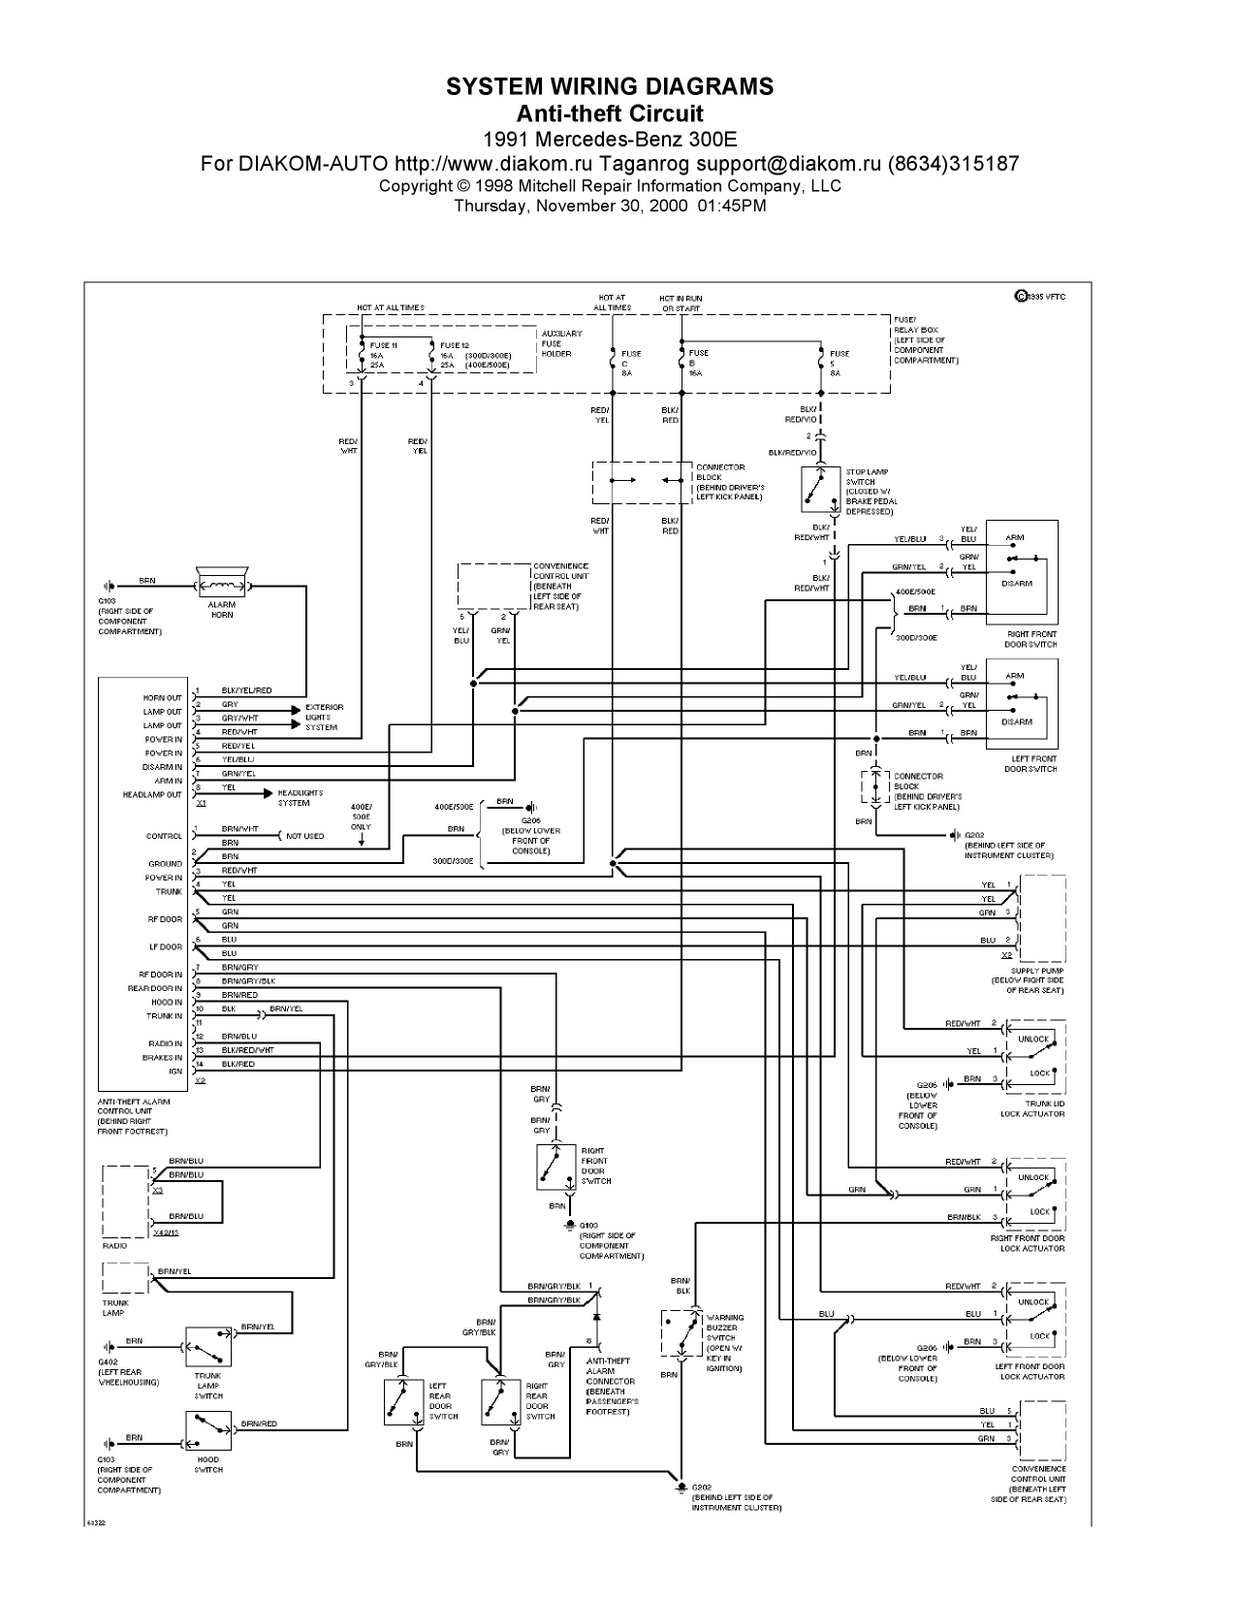 Radio Becker Wiring Diagram Along With 1993 Mercedes 300e